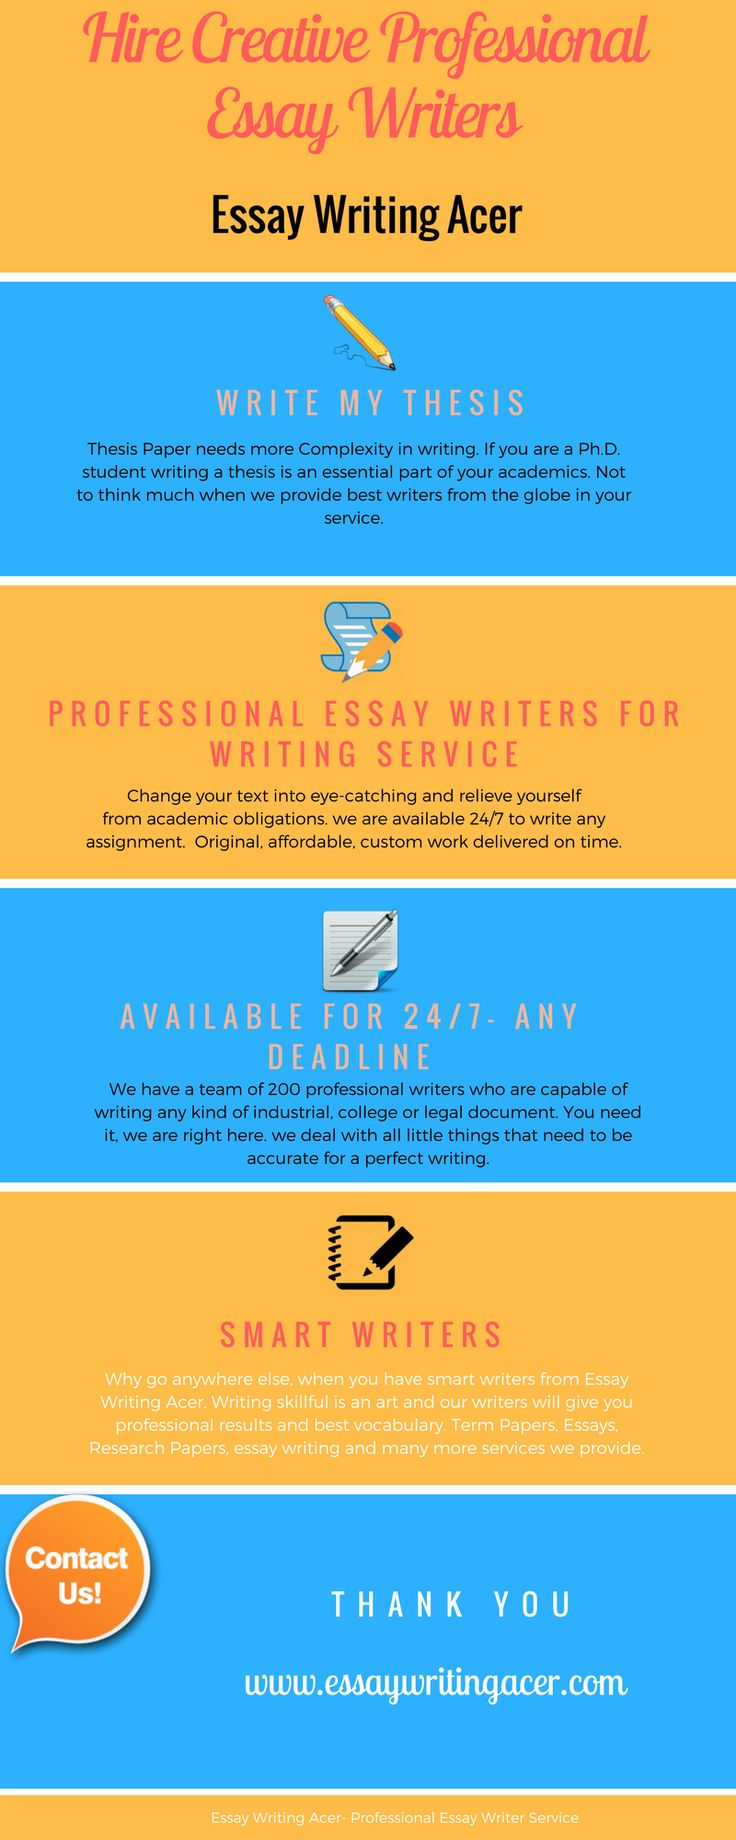 Best Expository Essay Writing Website Au